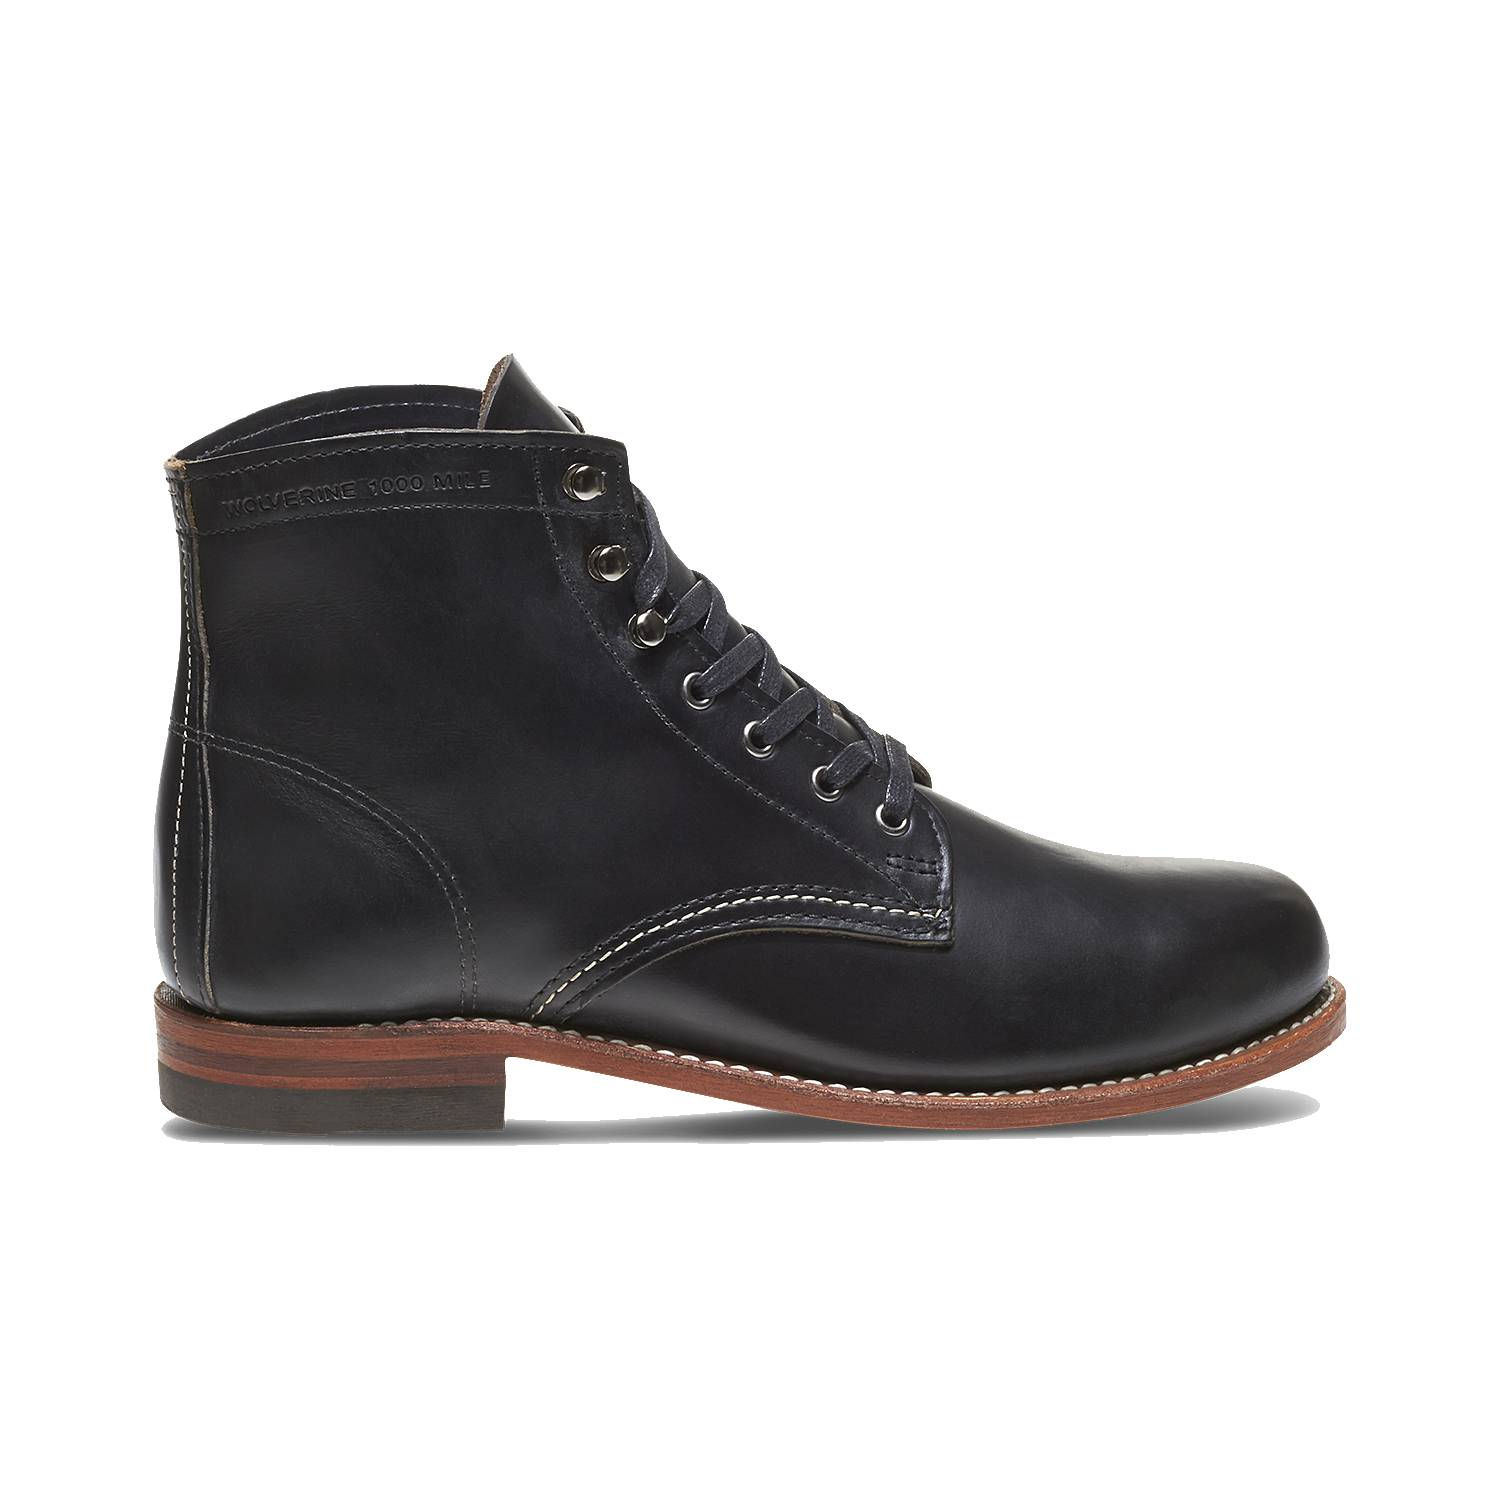 Wolverine-1000-Mile-Men-039-s-Leather-Boots-Cordovan-8-Black-Brown-Rust thumbnail 3